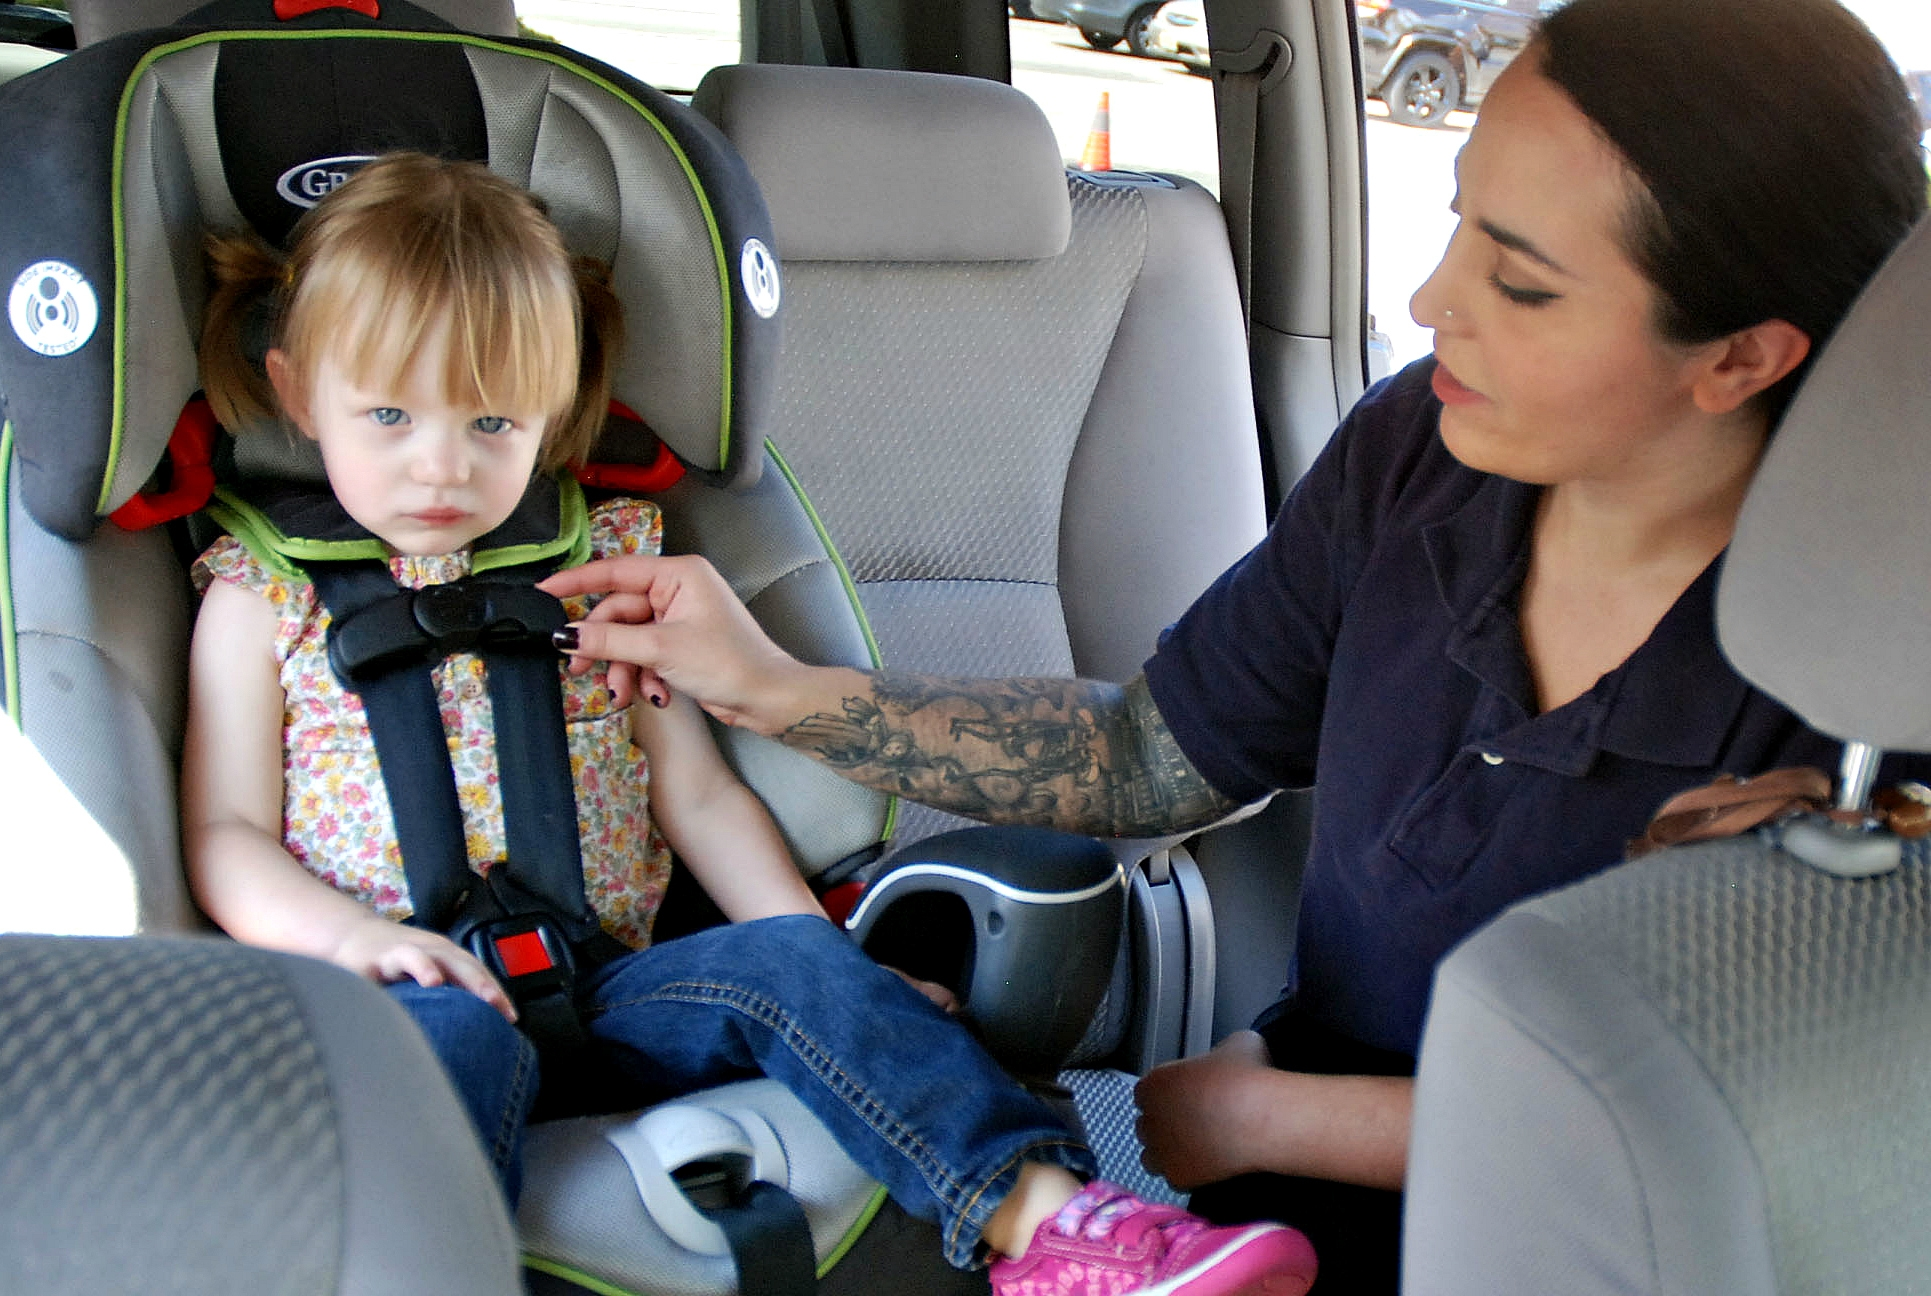 Union County Offers Child Safety Seat Inspections and Other Traffic ...